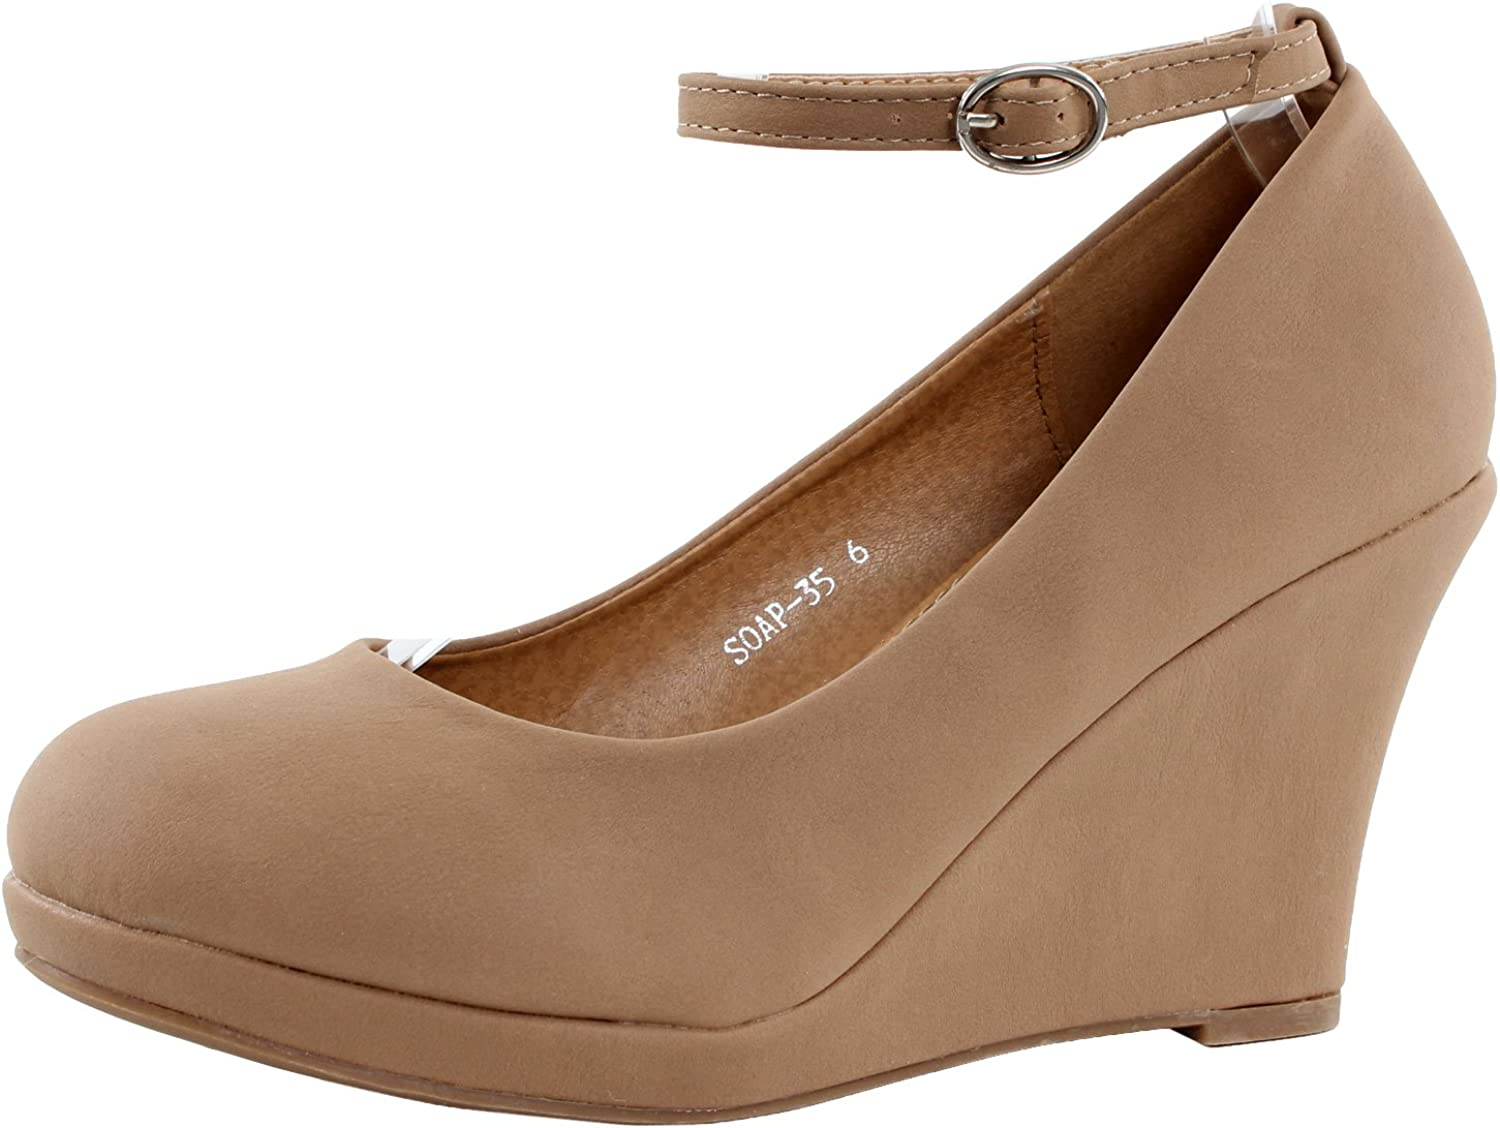 Top Moda Soap-35 Wedges Pumps-shoes